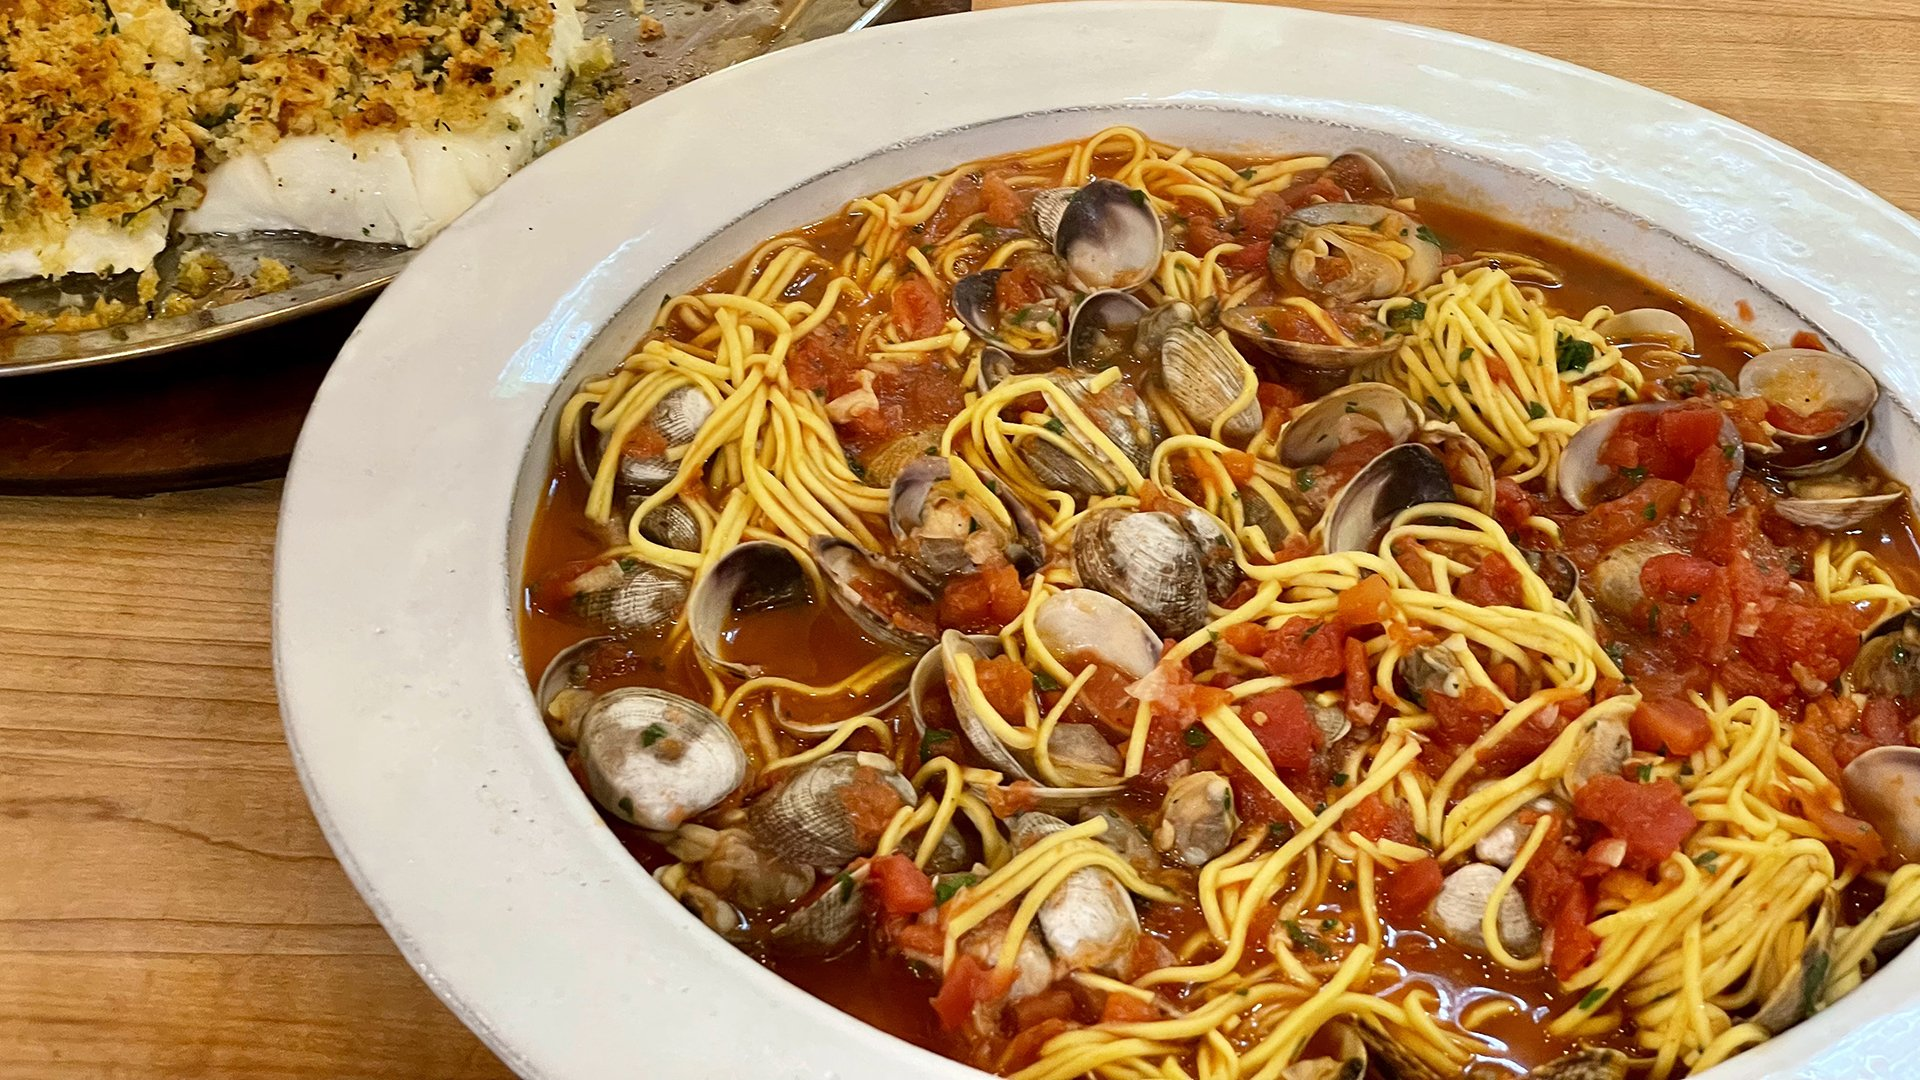 Simple Seafood Lover's Supper: Spaghetti or Linguini with Red Clam Sauce